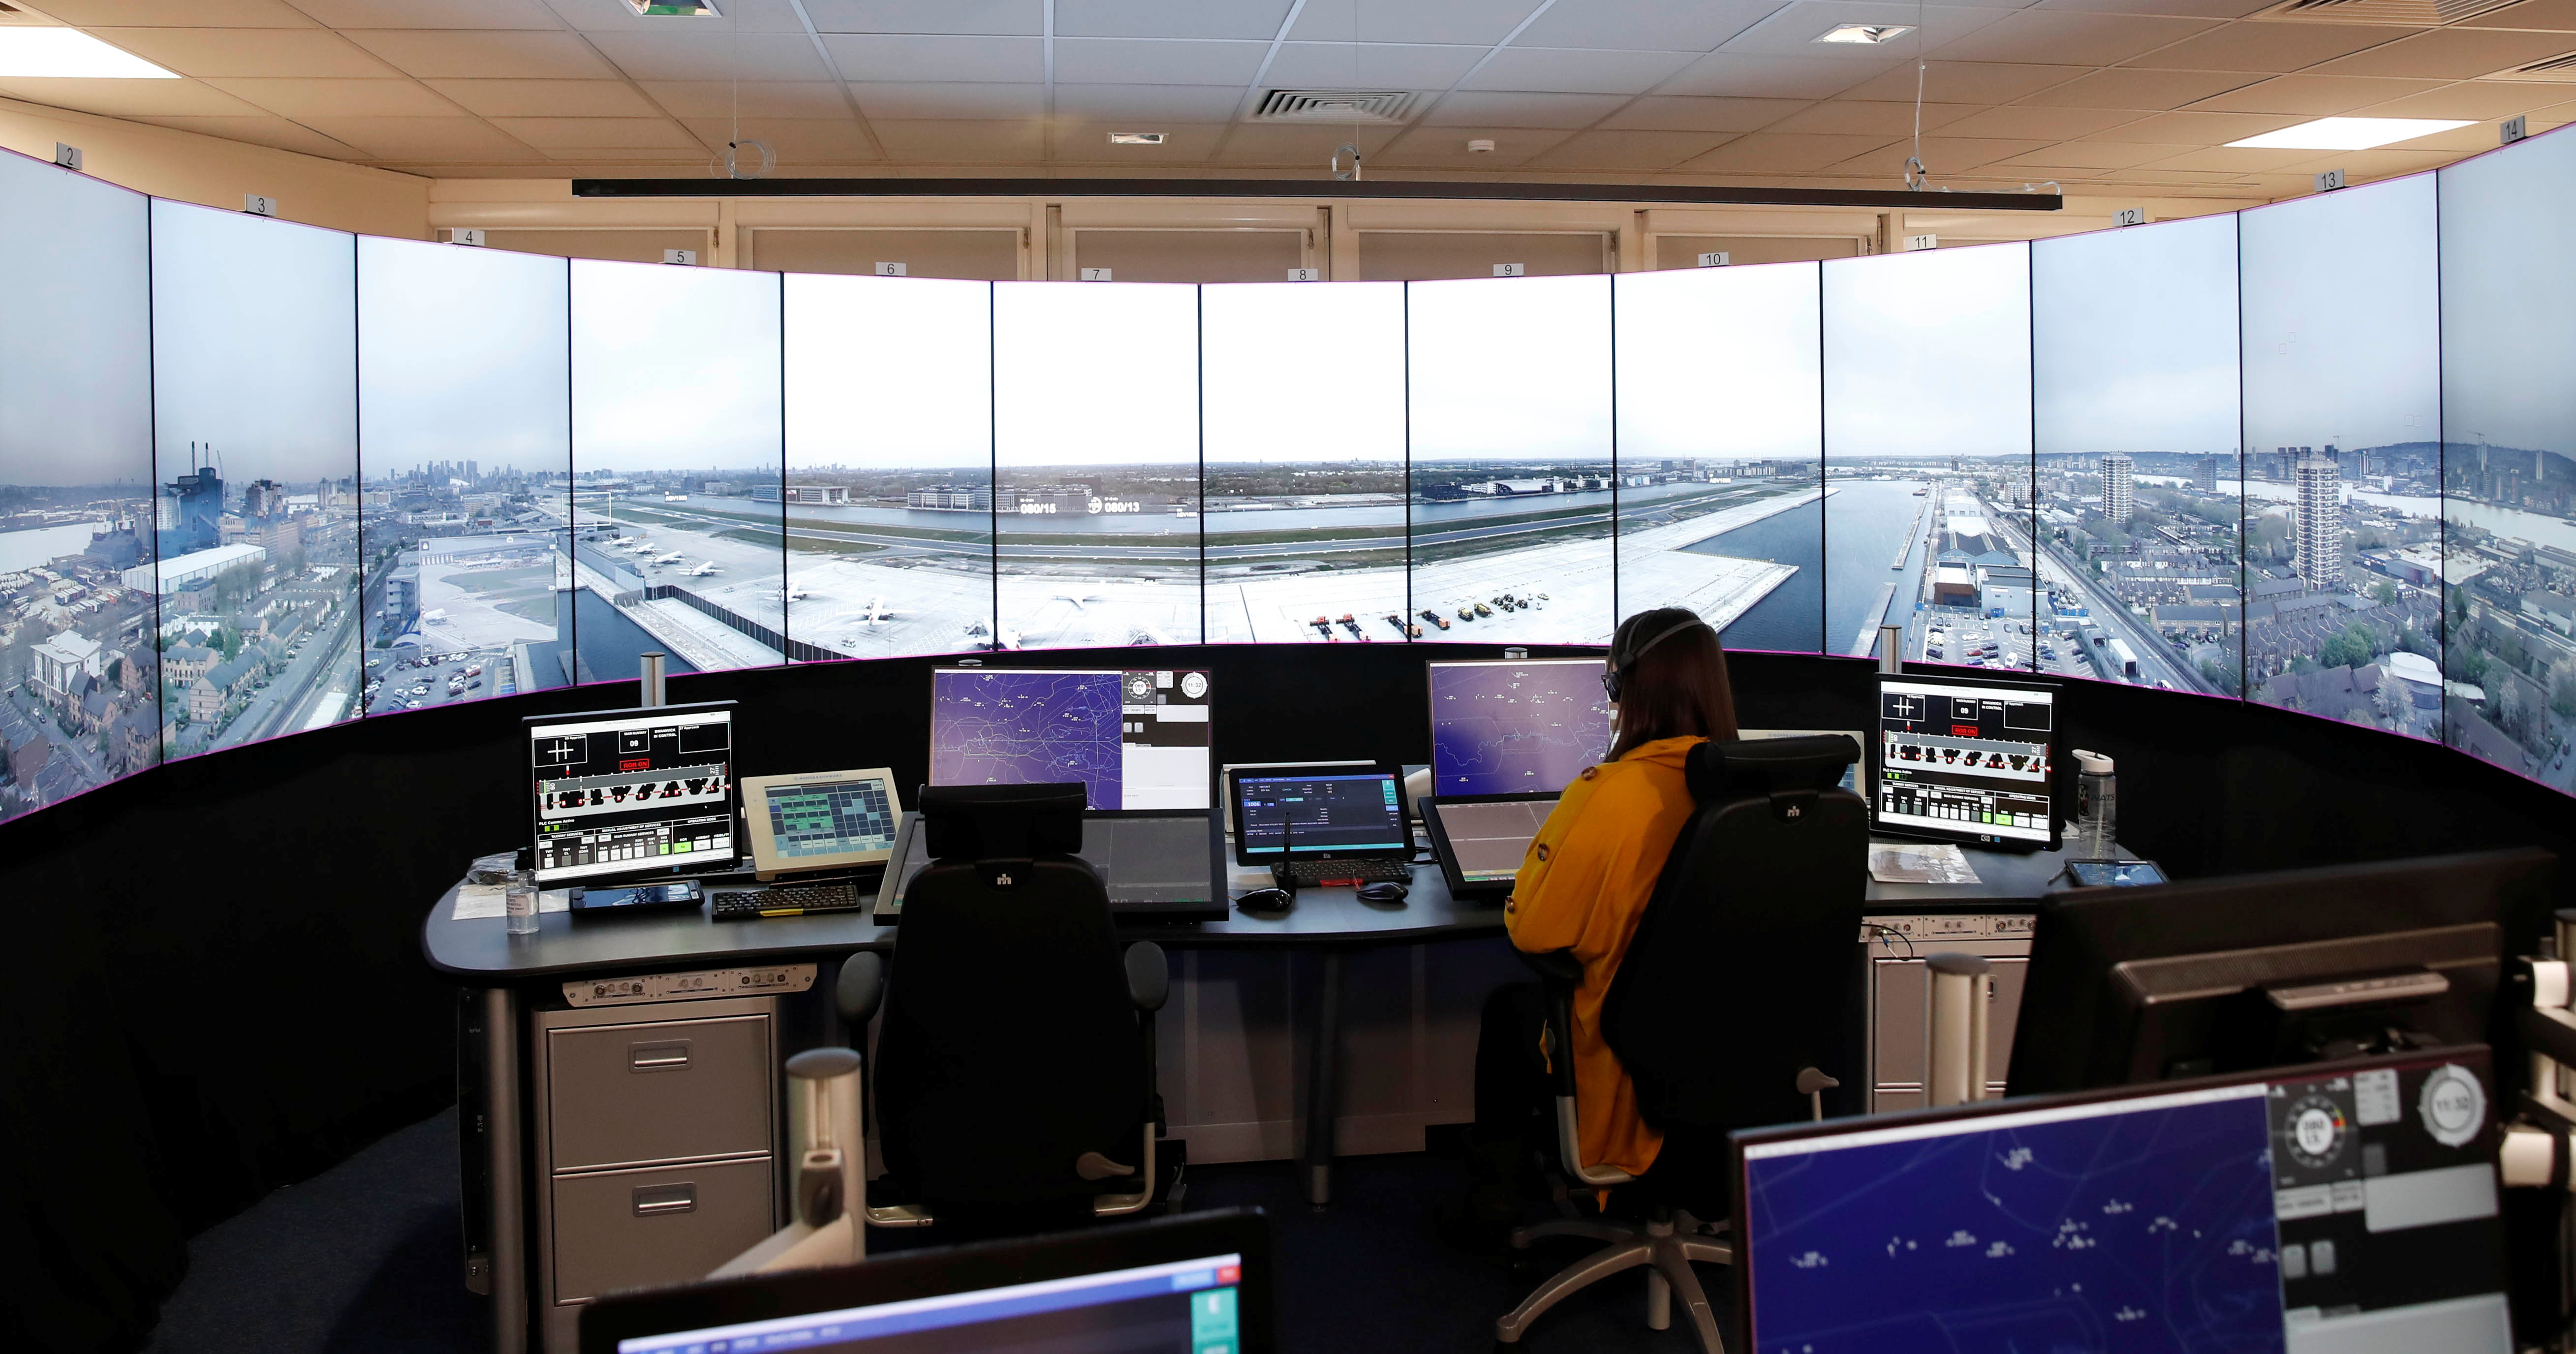 A view of NATS air traffic control as London City Airport is set to become the first major international airport to operate a remote control tower, in Swanwick, Britain, April 28, 2021. Picture taken April 28, 2021. REUTERS/Matthew Childs